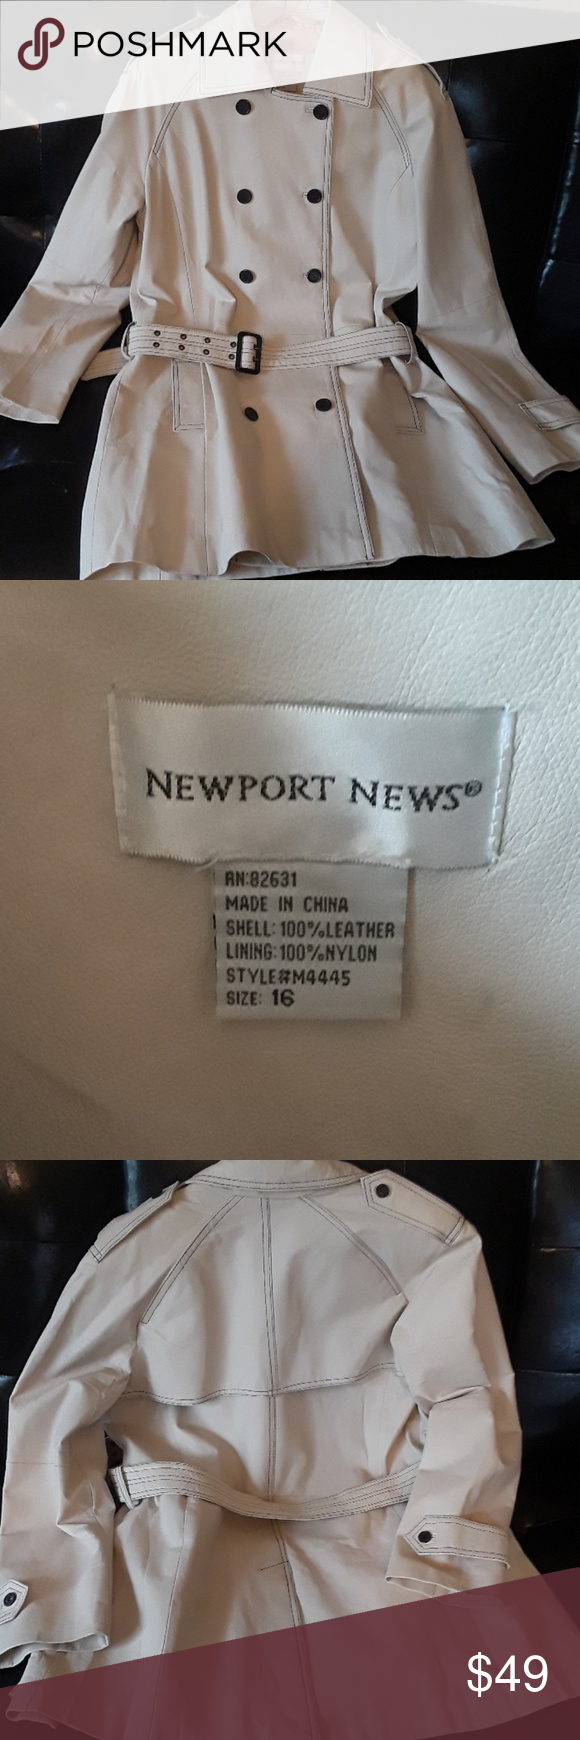 Newport News Cream Leather Coat With Images Leather Coat Clothes Design Fashion Tips